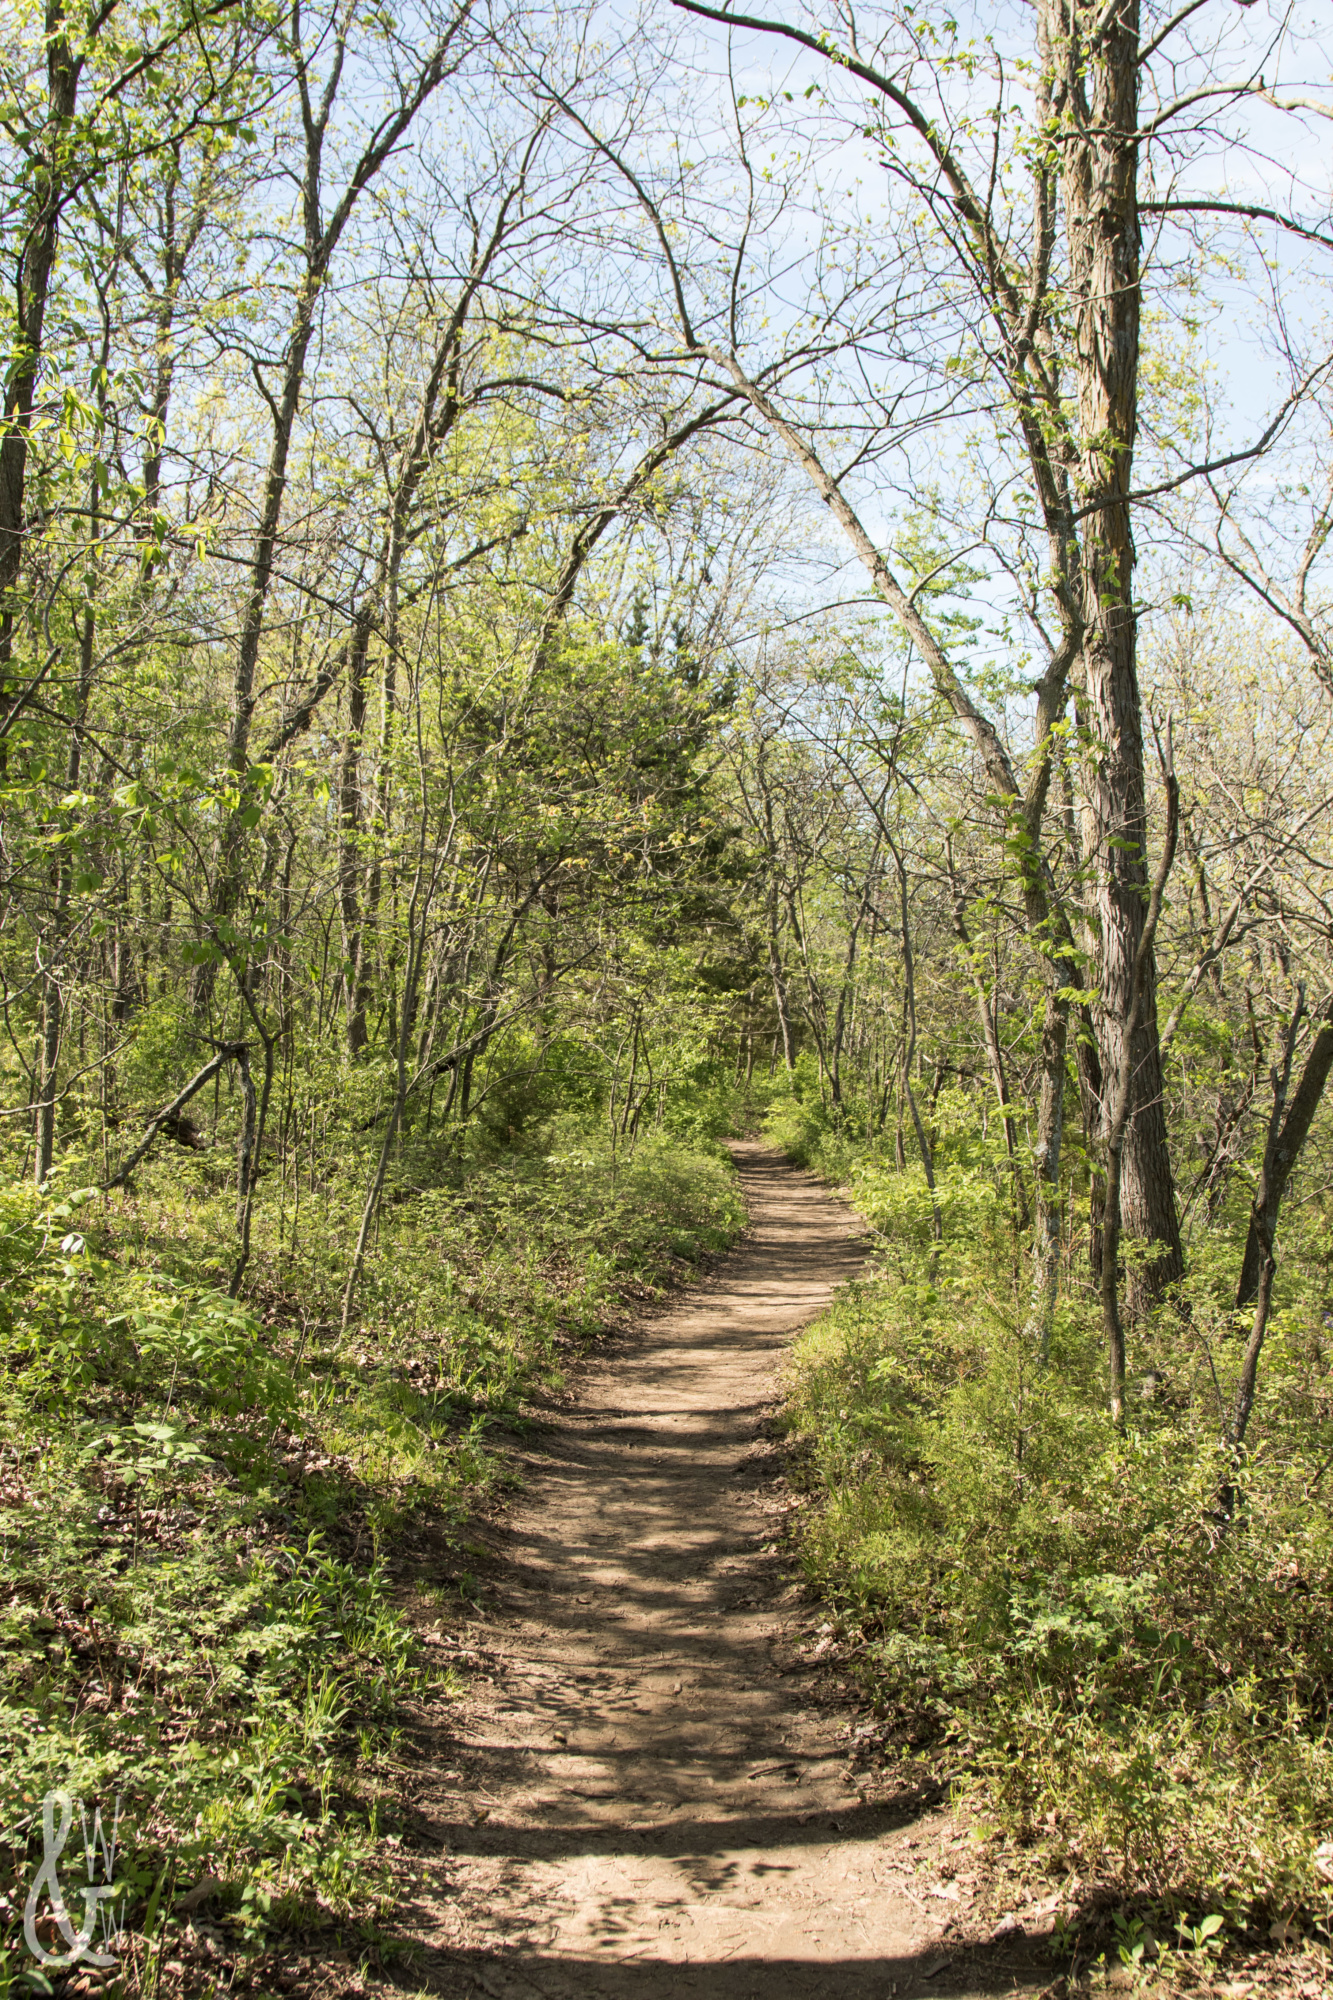 Practicing my photography during my April photo challenge while hiking at Shawnee Mission Park!